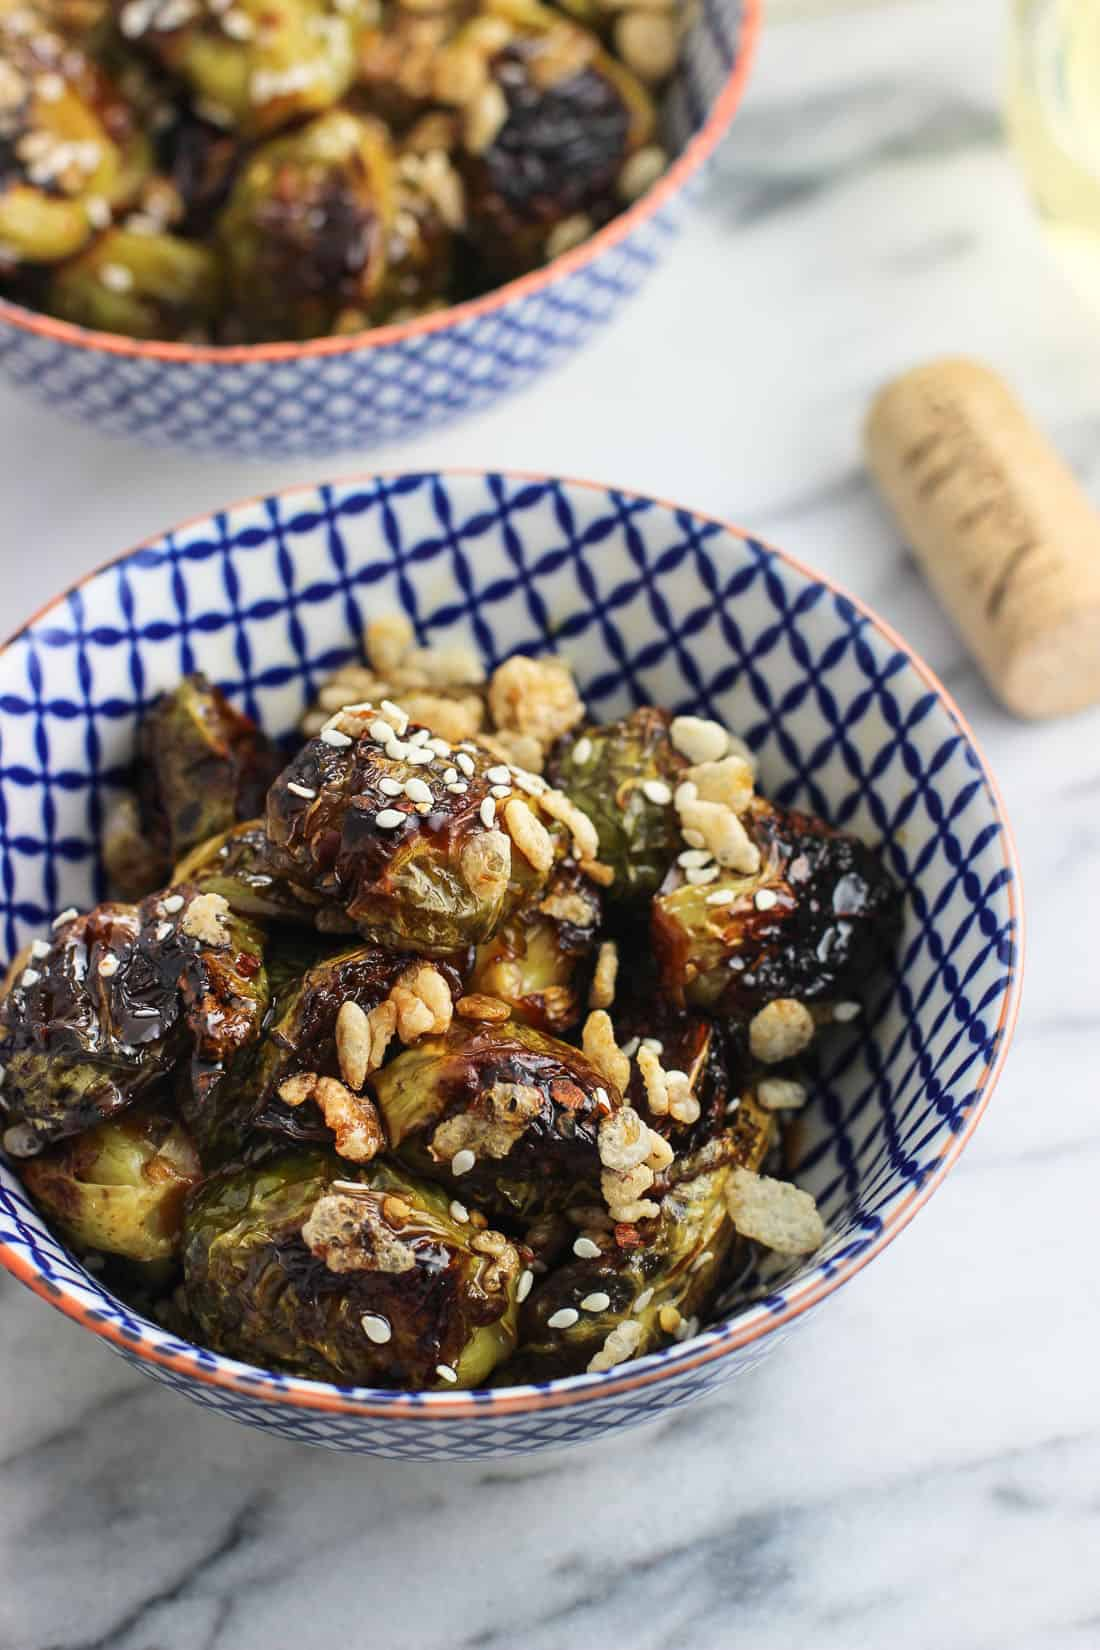 A close-up of a bowl of roasted Brussels sprouts topped with crisped rice with a wine cork and another bowl in the background